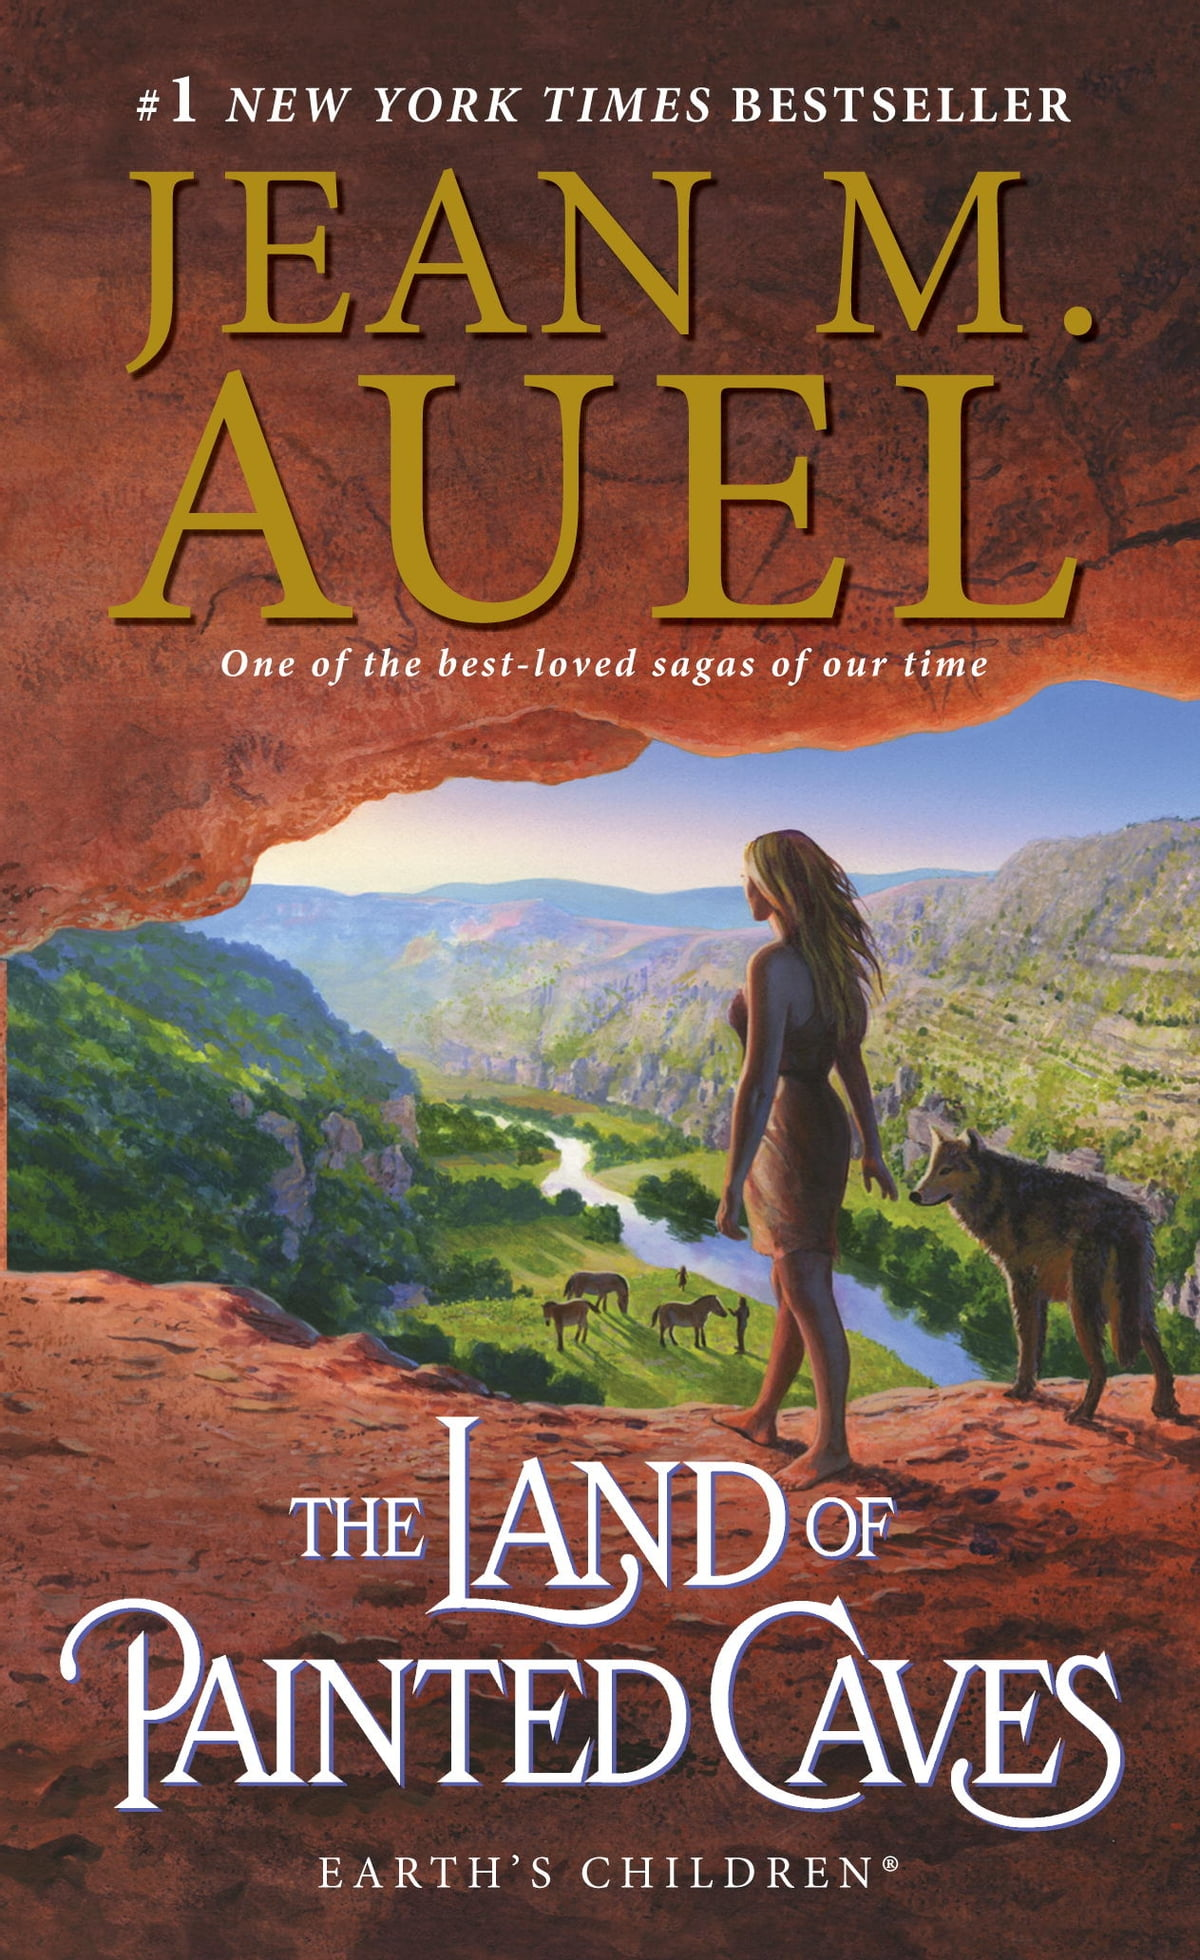 The land of painted caves earths childrenr book six ebook by the land of painted caves earths childrenr book six ebook by jean m auel 9780307886651 rakuten kobo fandeluxe Epub